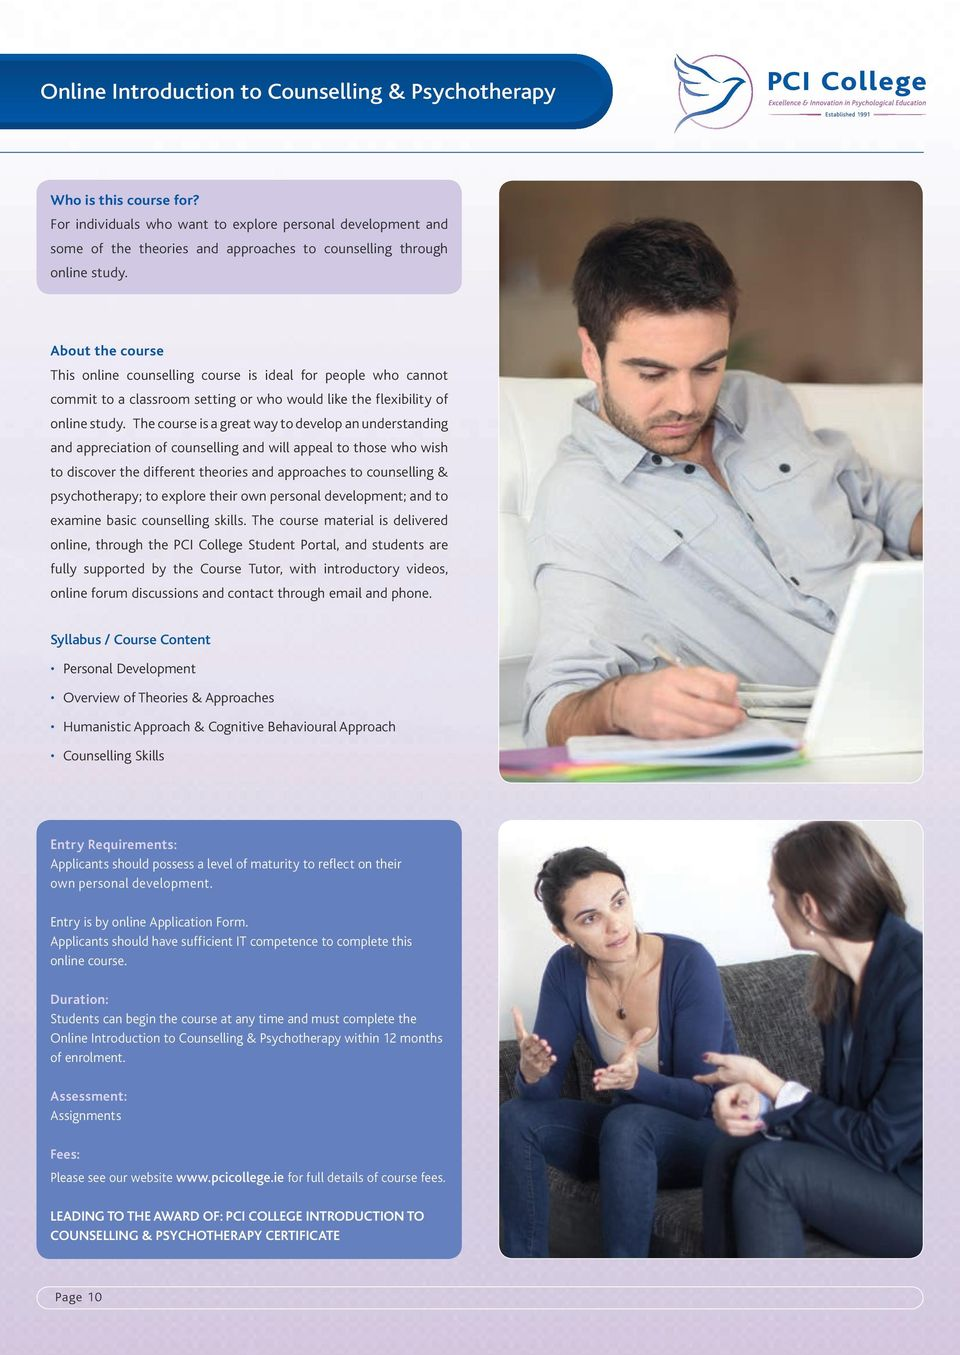 About the course This online counselling course is ideal for people who cannot commit to a classroom setting or who would like the flexibility of online study.